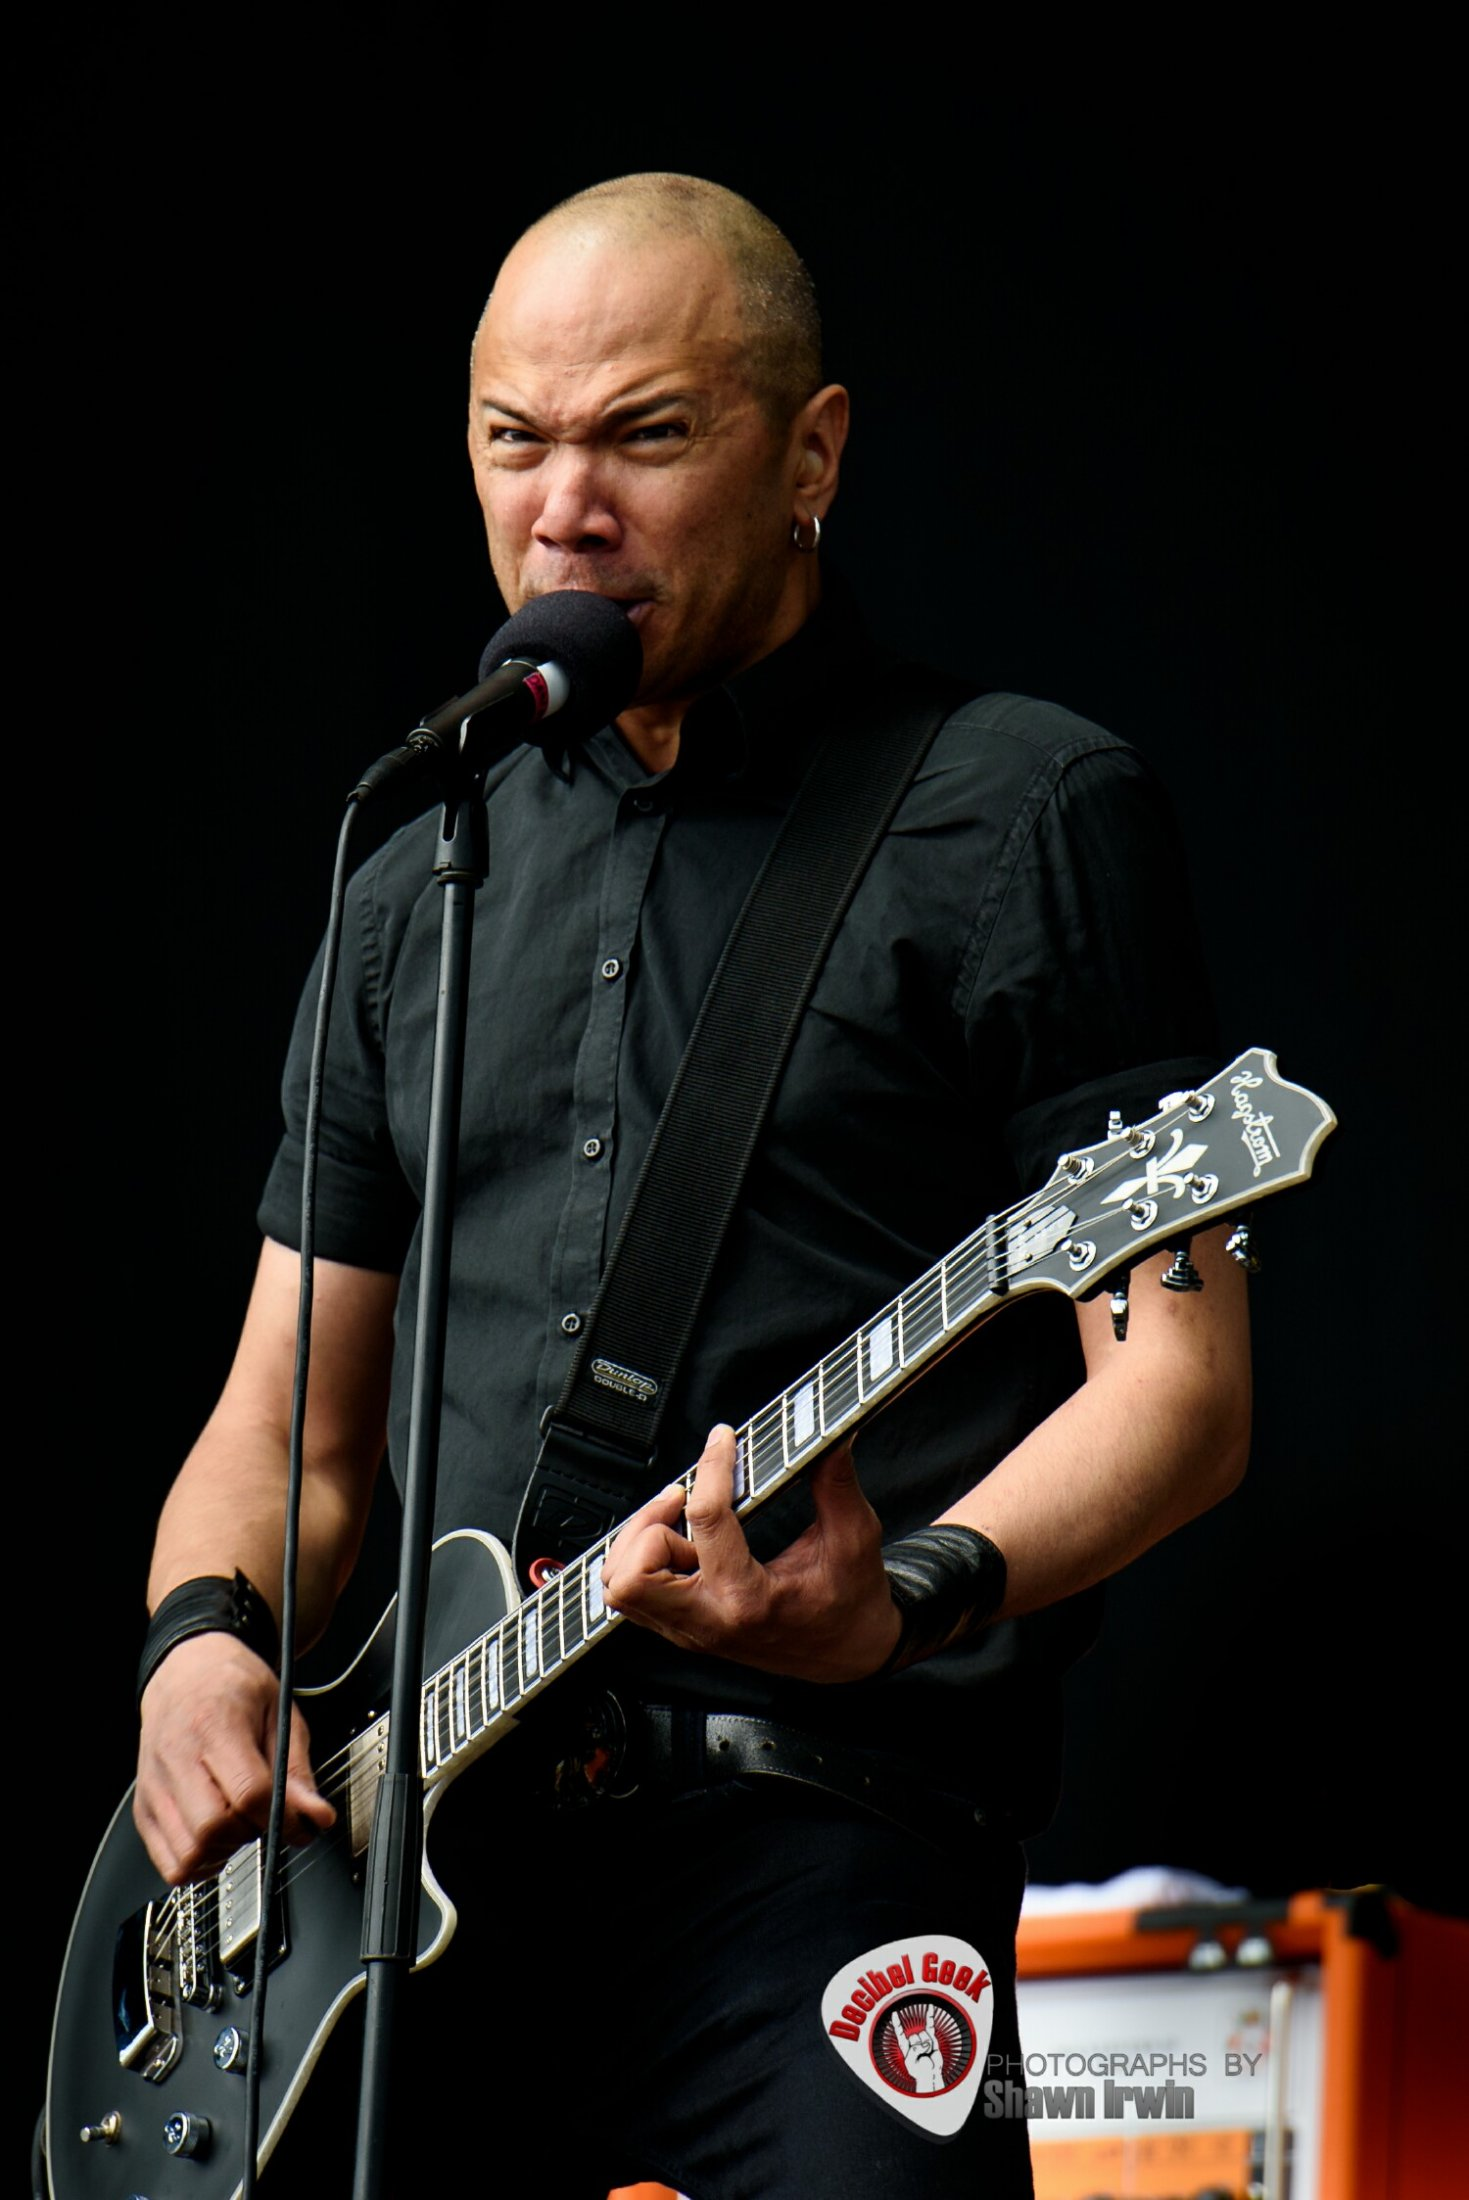 Danko Jones #8-SRF 2019-Shawn Irwin